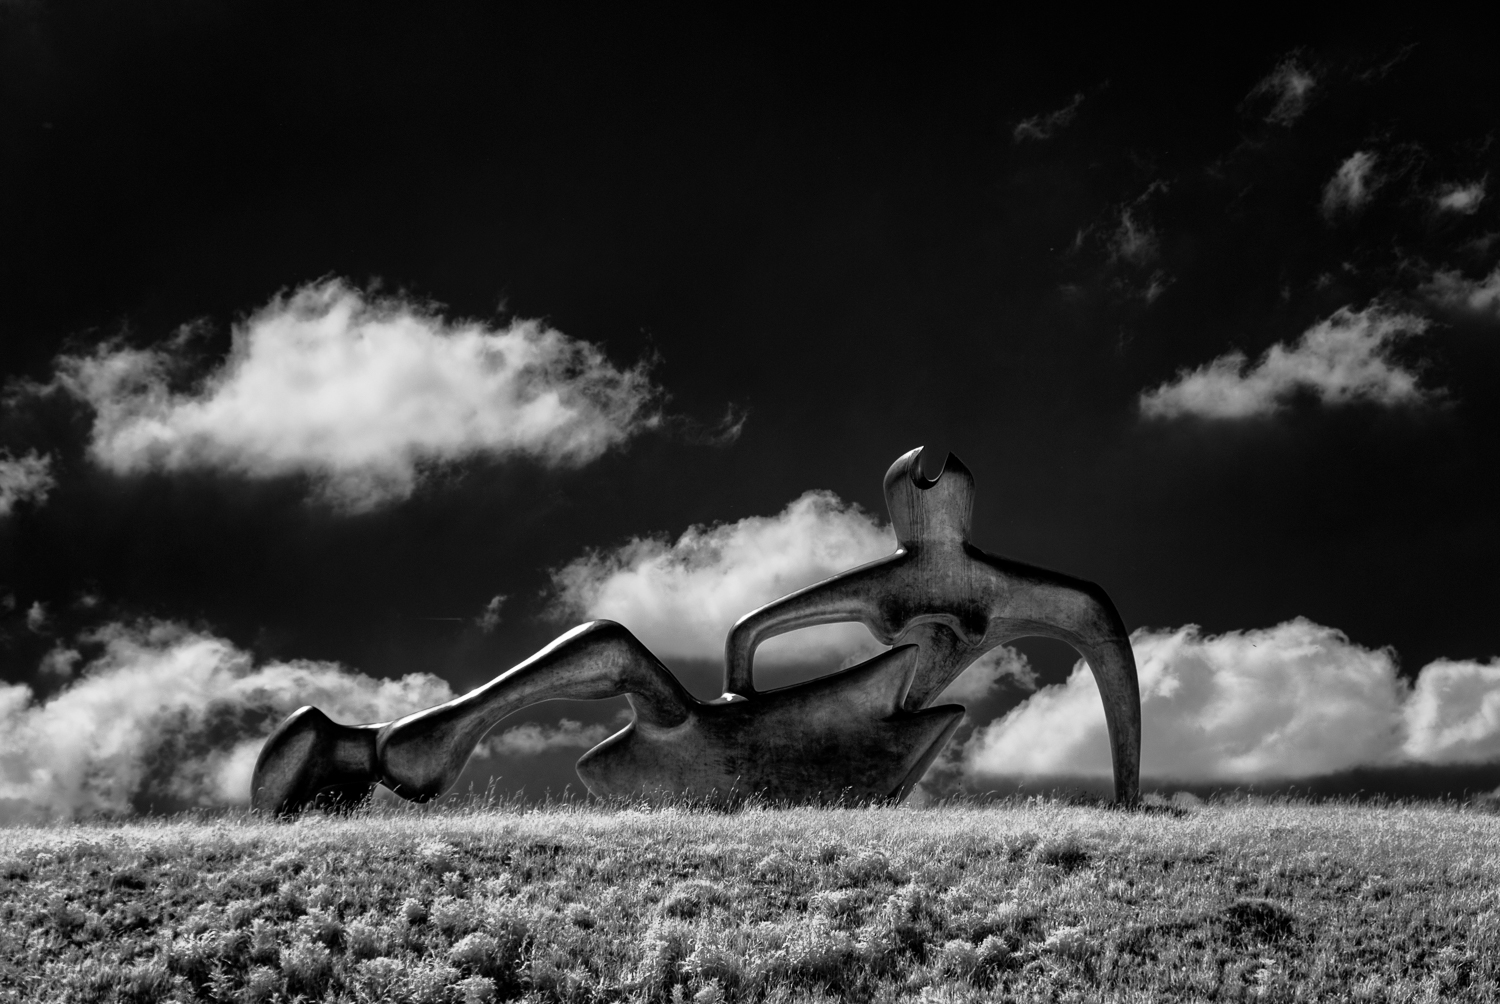 Large Reclining Figure - infra-red